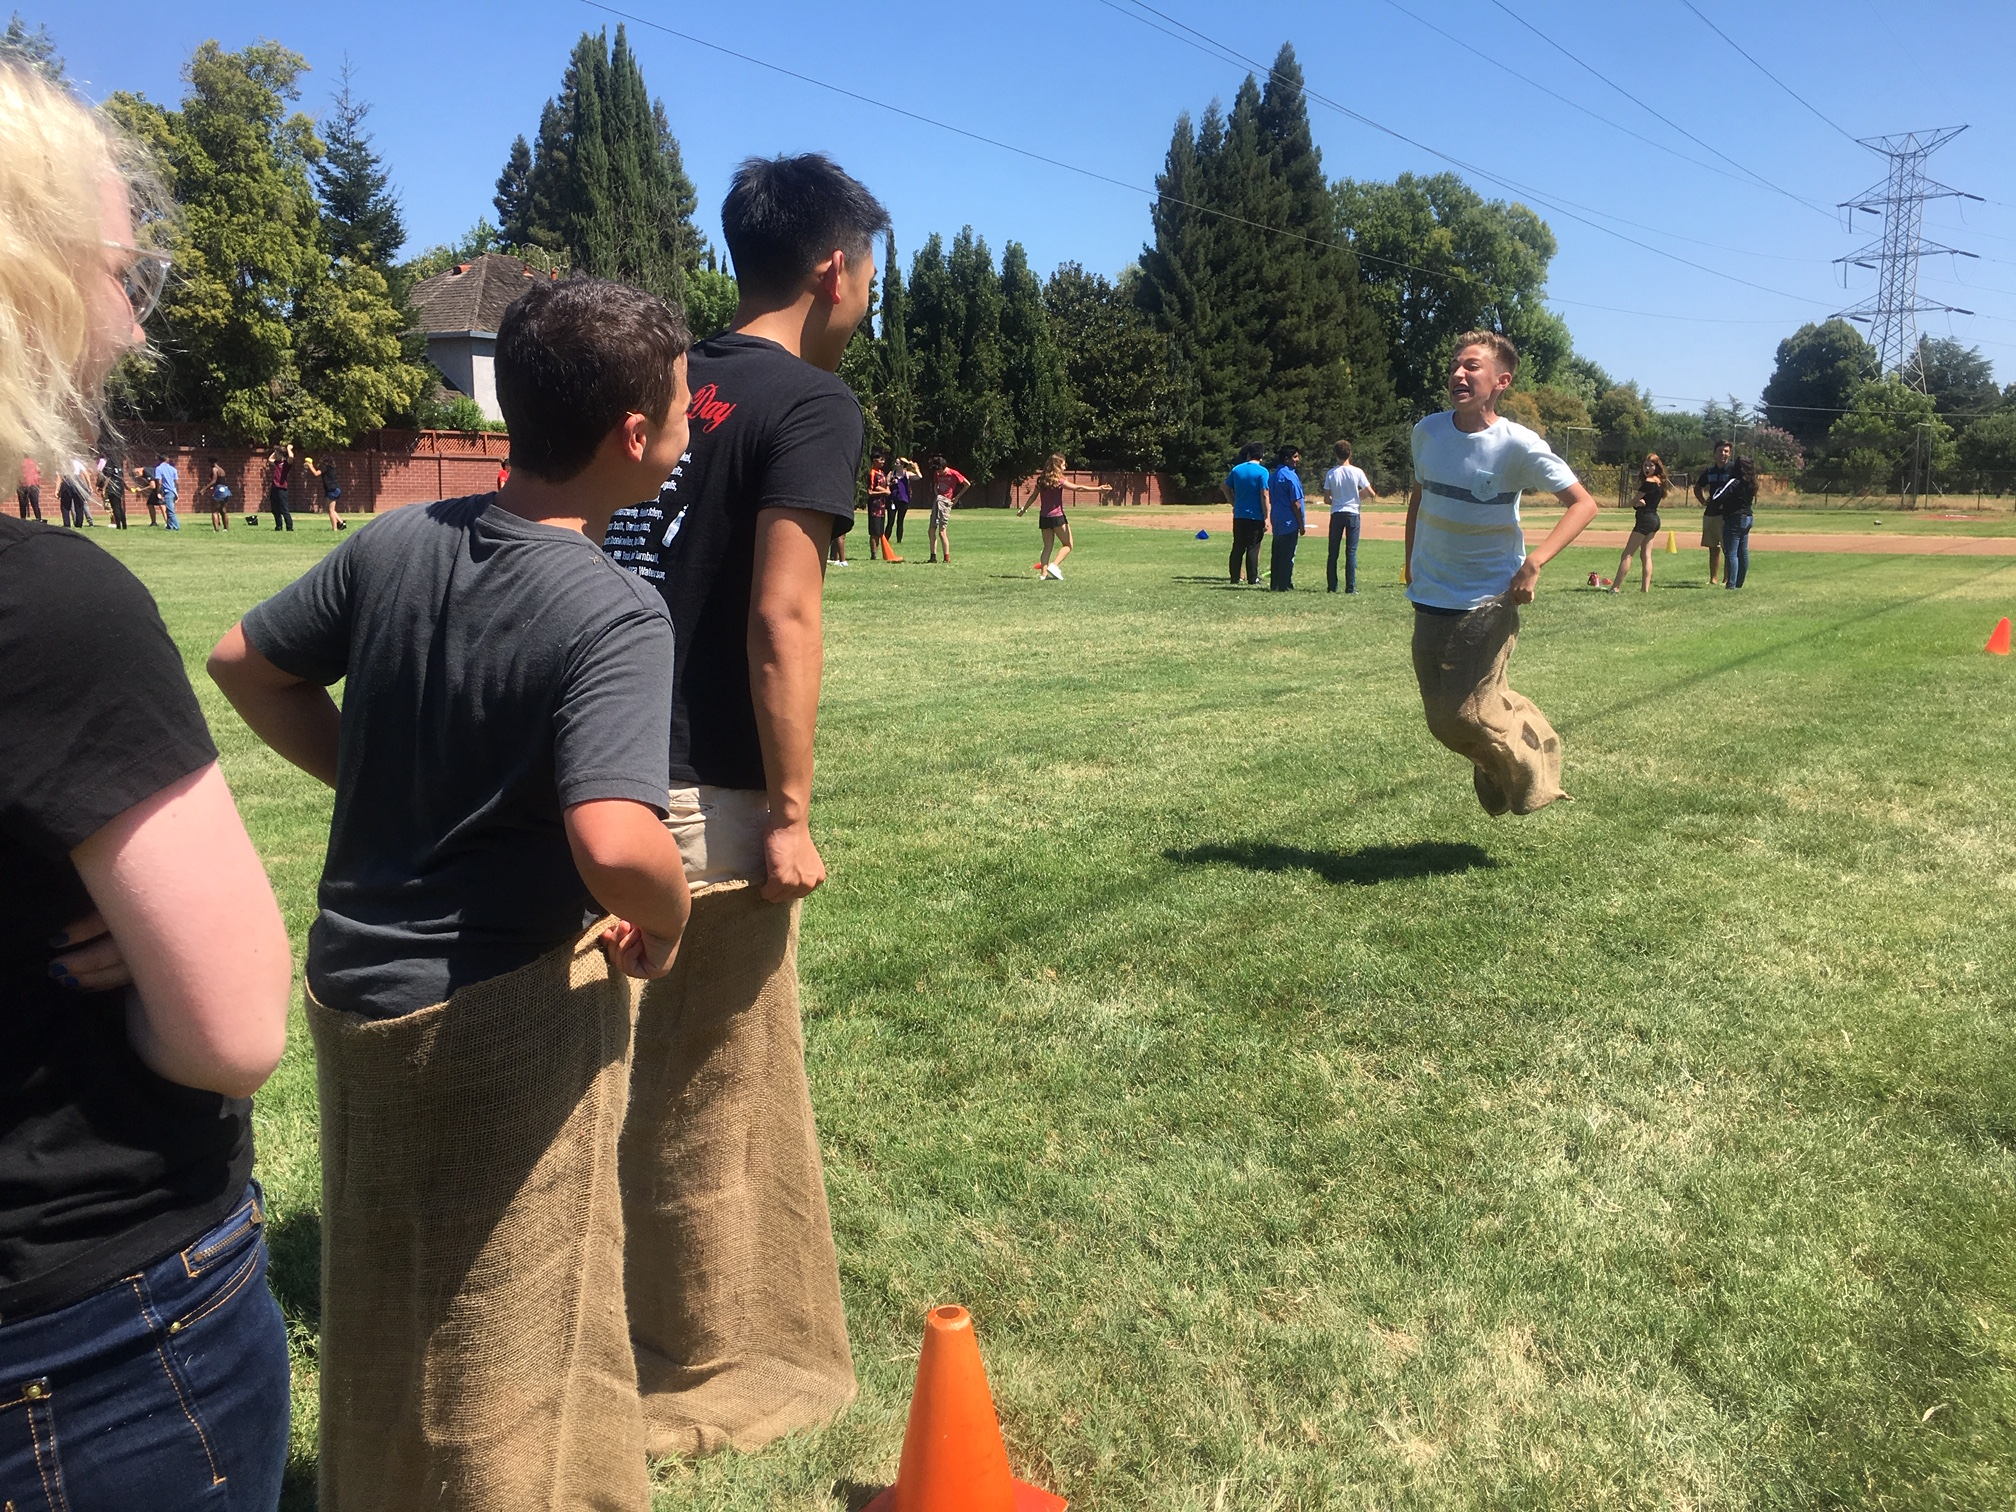 As teammate senior Jason Li (second from right) waits to take over in the sack race relay, freshman Ross Vargo jumps toward the finish. (Photo by Larkin Barnard-Bahn)